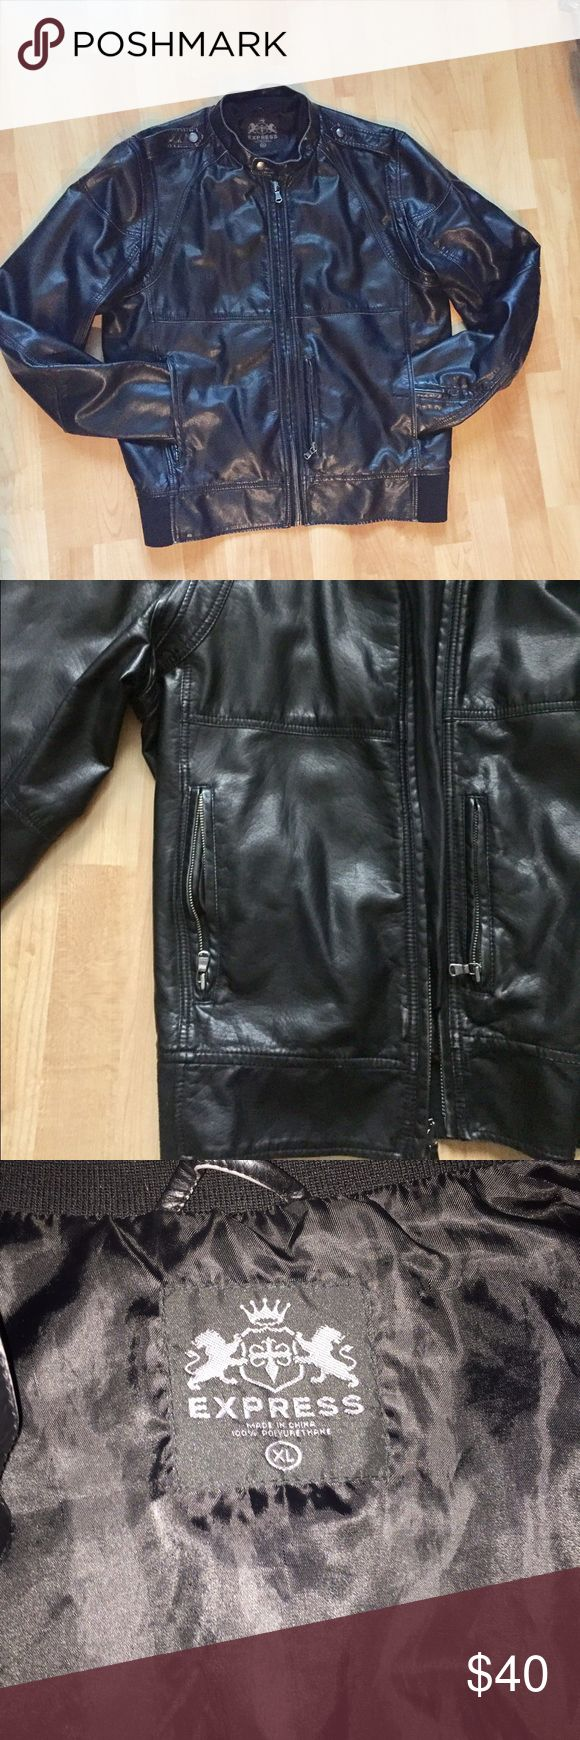 "Men's Express faux leather jacket Men's black faux leather motorcycle style jacket from Express. Size XL and 100% polyester. The bottom of the jacket on the back is knit. There is some slight fading and not very noticeable. All zippers work. Measurements (approximately): shoulder - 18.5""; chest - 23""; length - 27""; sleeves - 27"" Express Jackets & Coats"